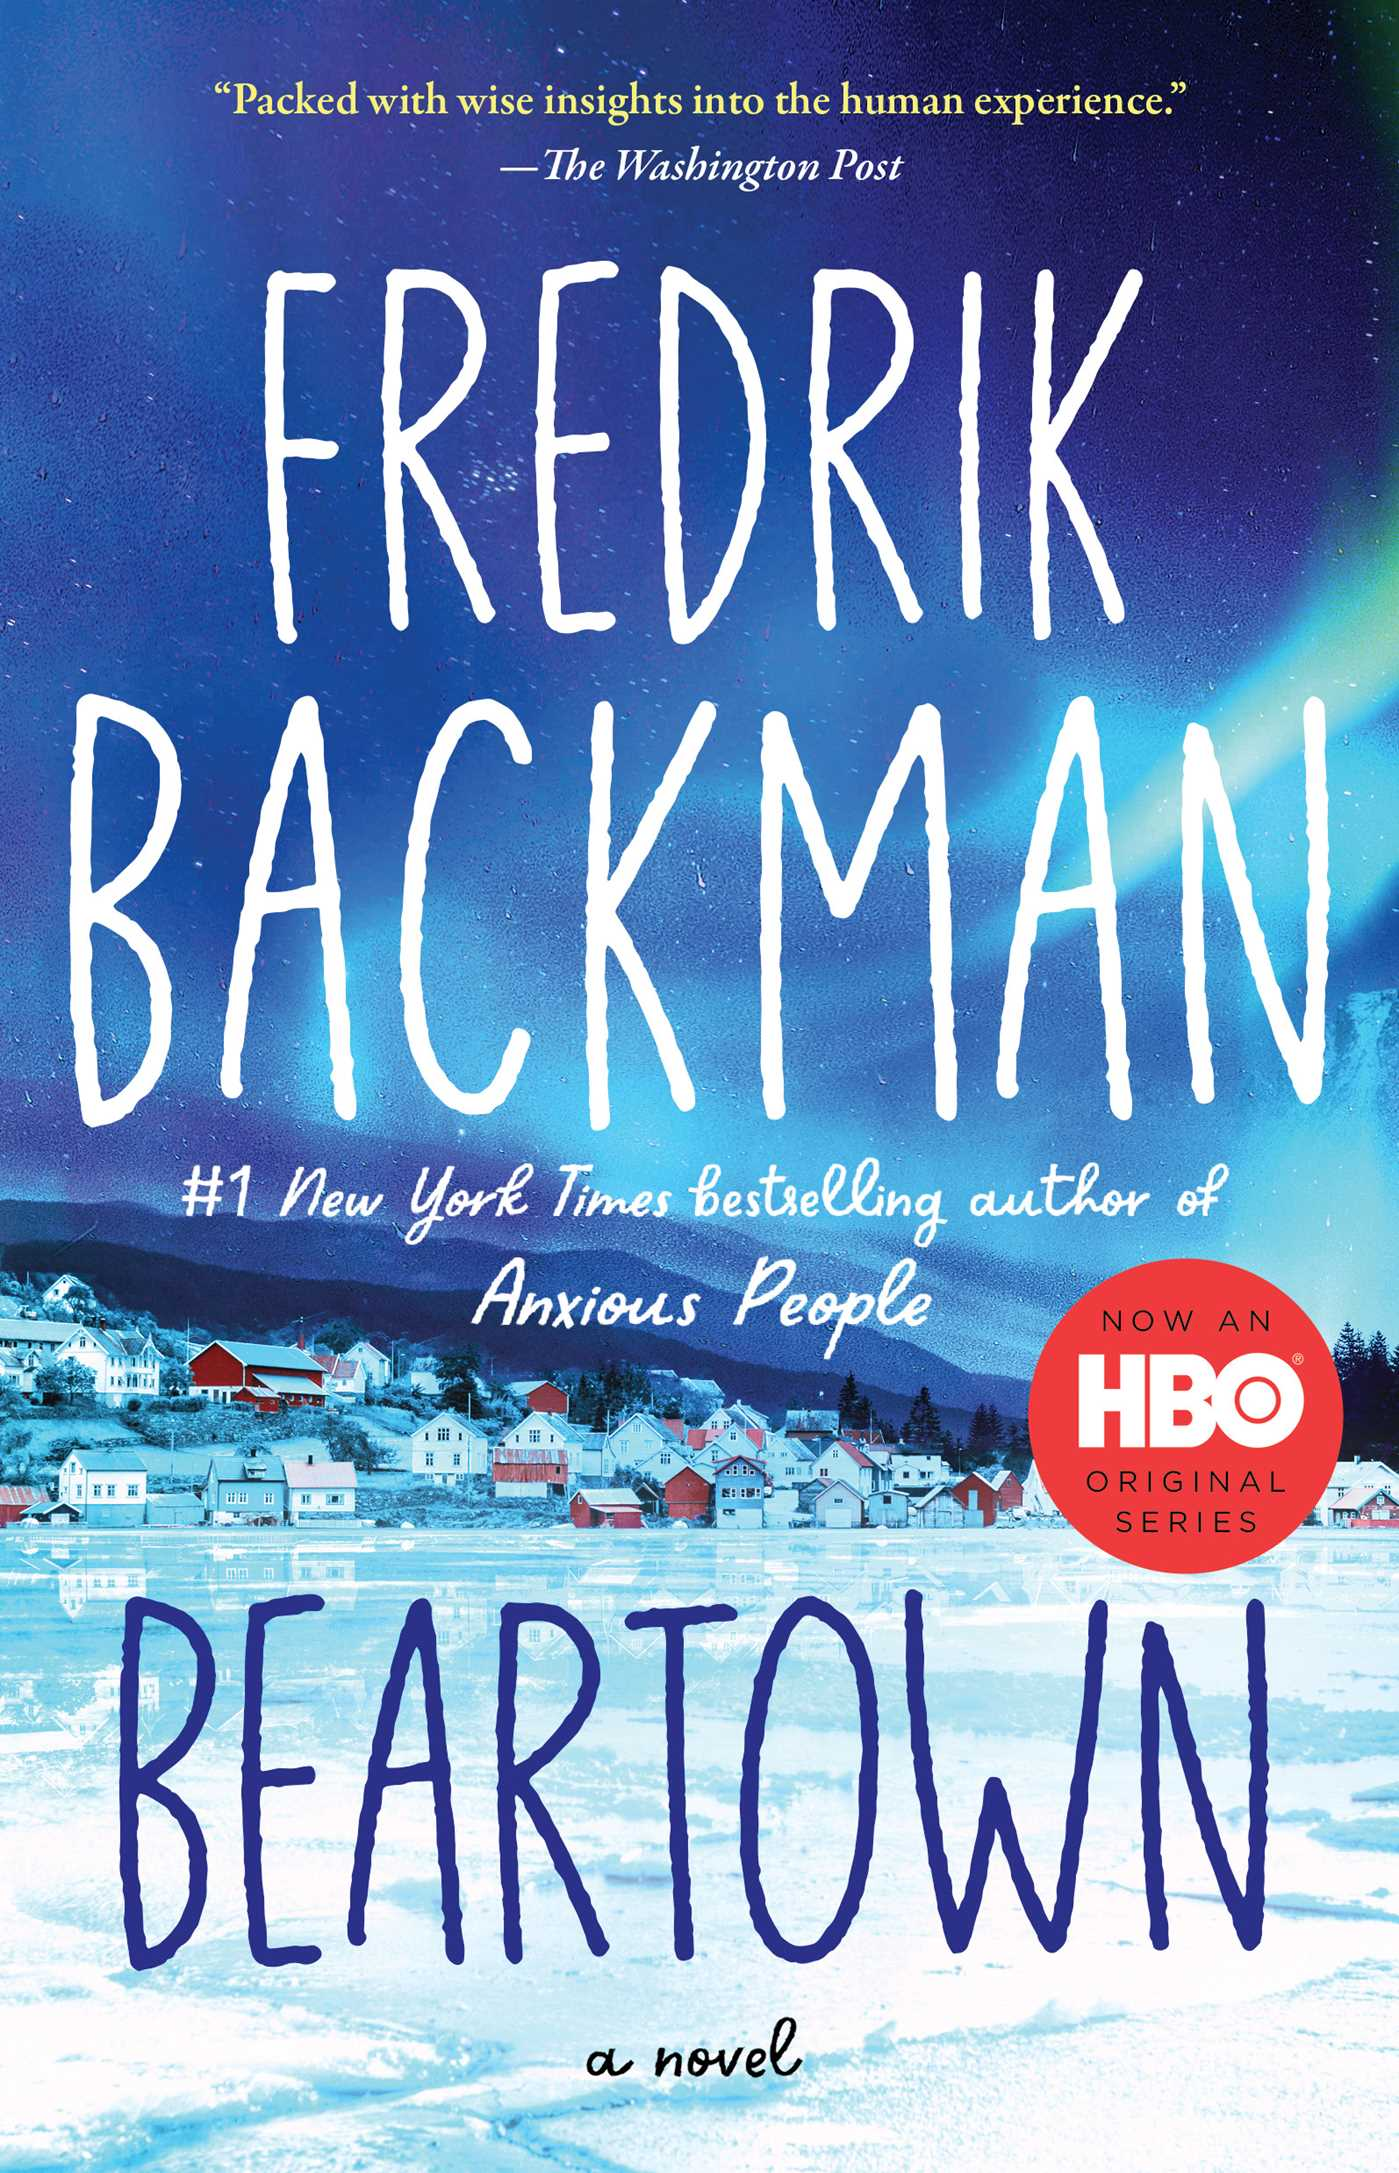 Fredrik backman official publisher page simon schuster beartown fandeluxe Choice Image